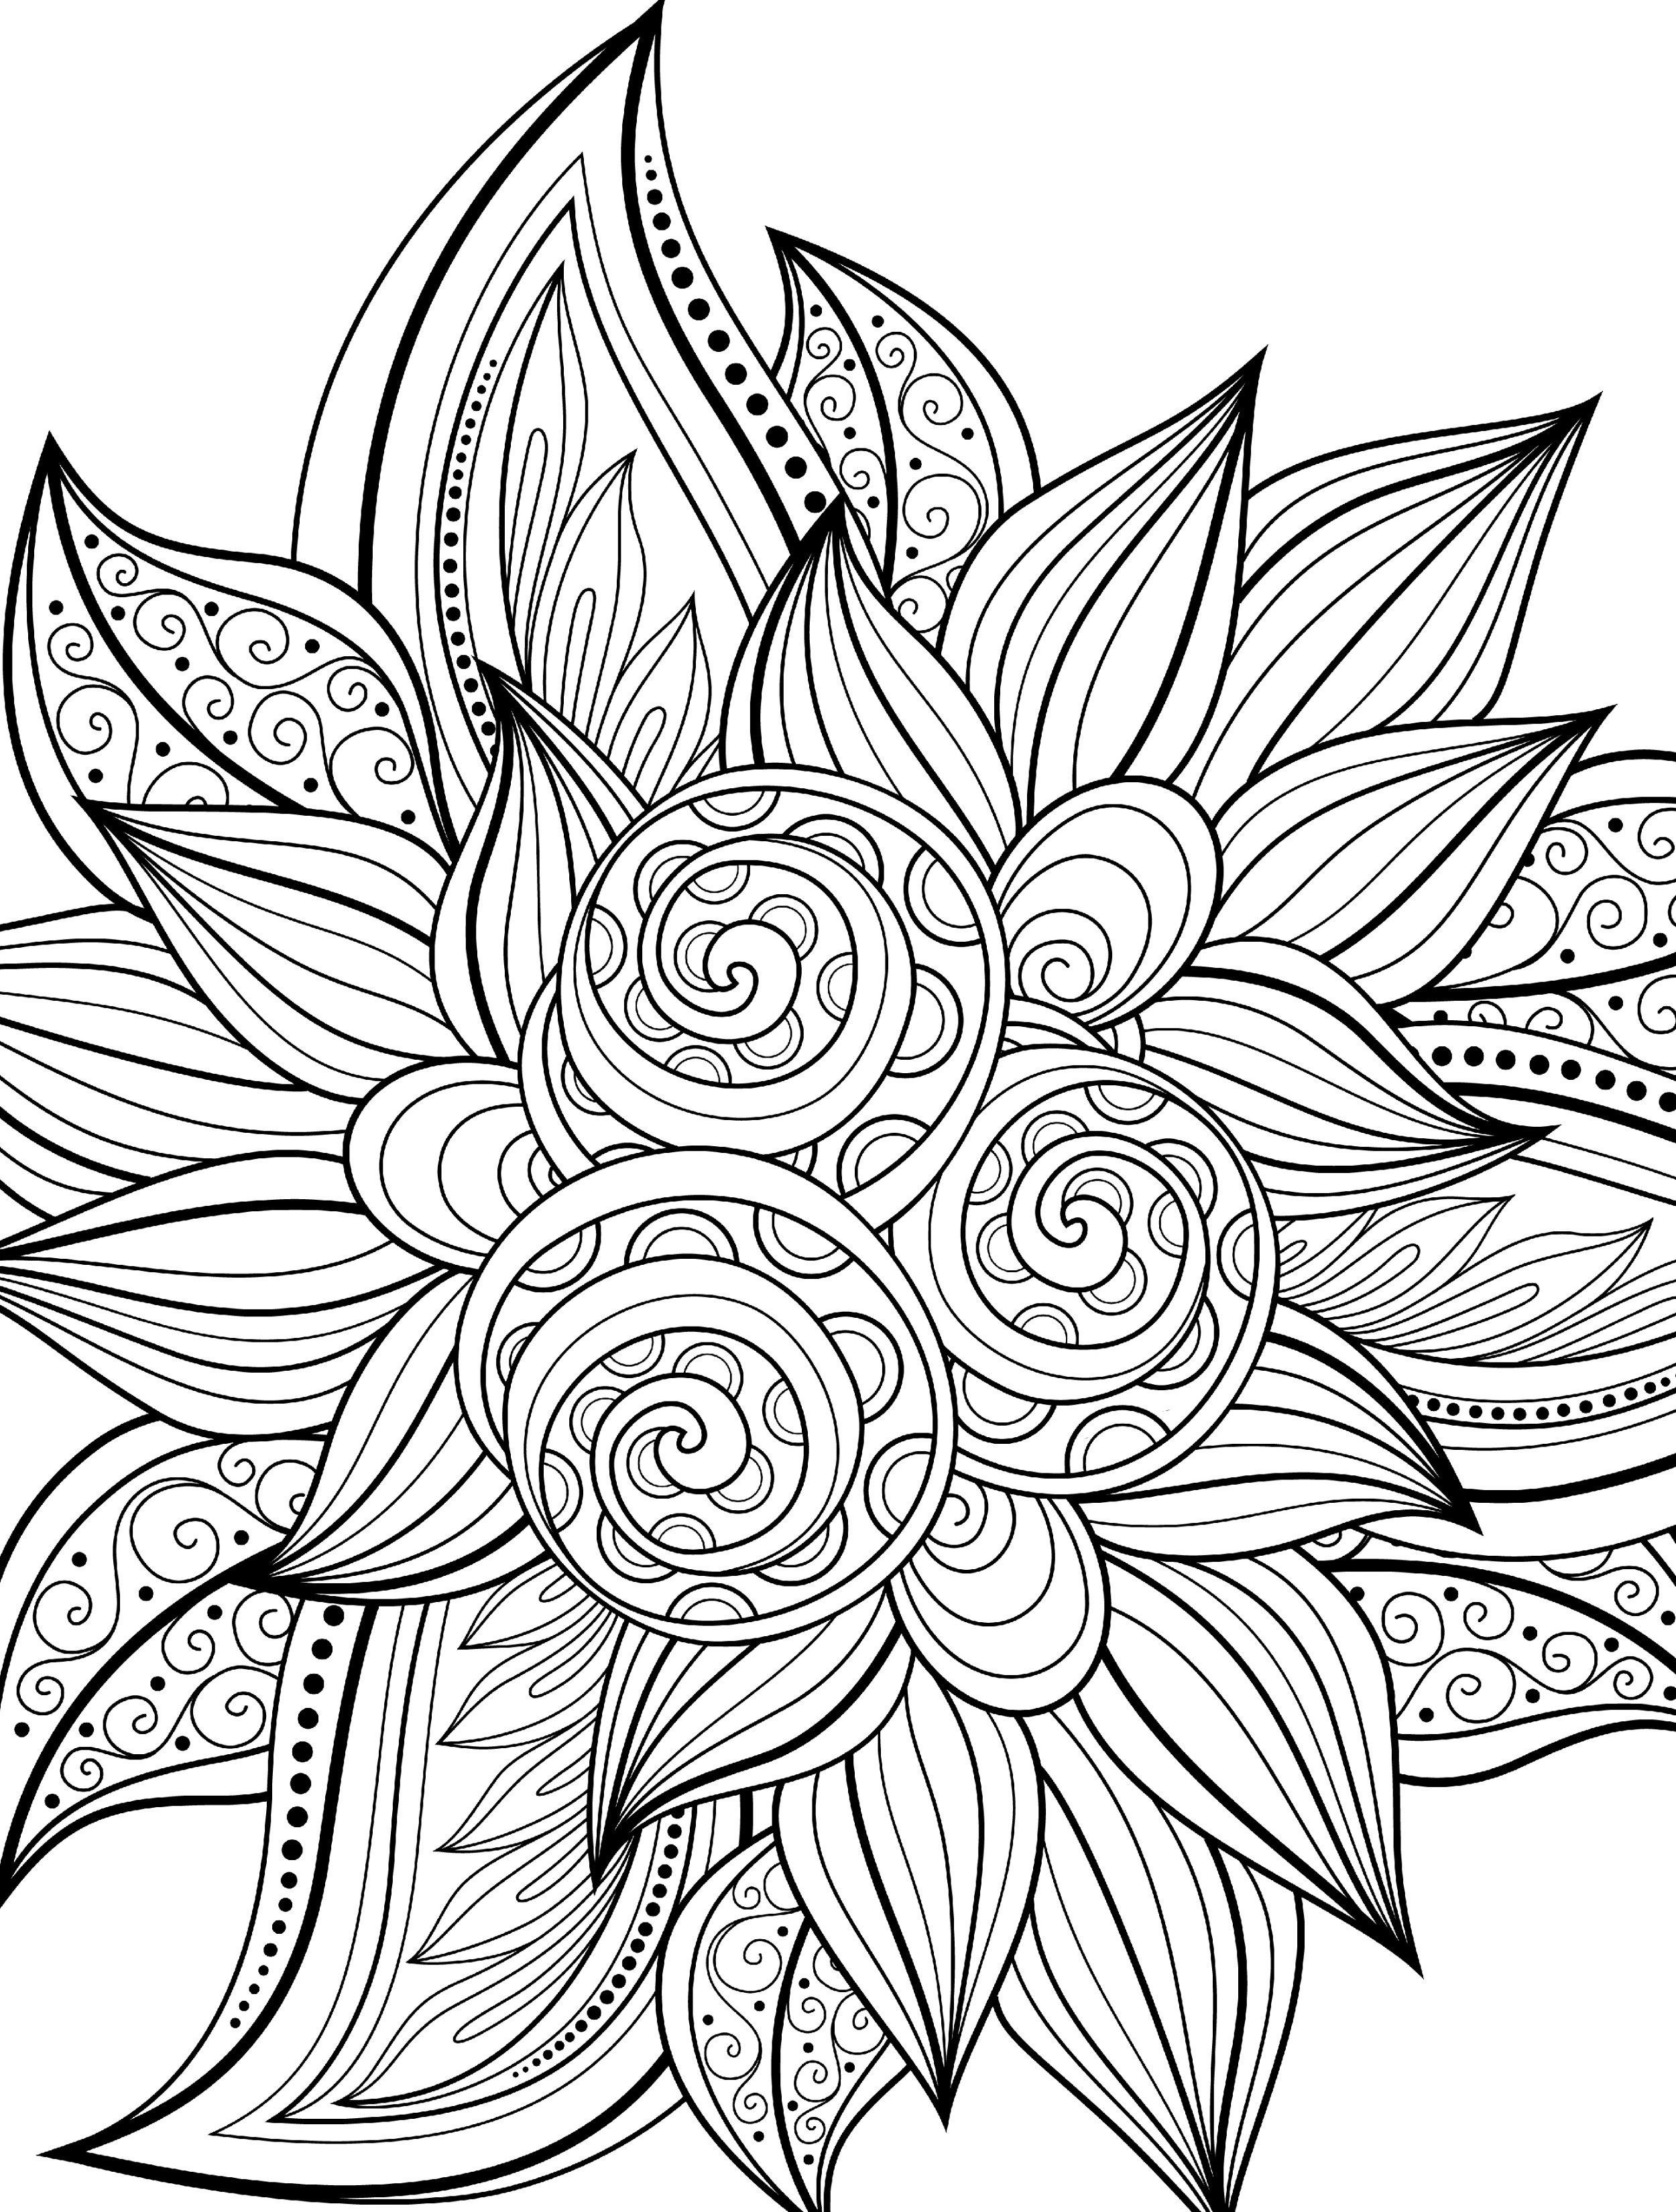 10 free printable holiday adult coloring pages - Free Cool Coloring Pages For Adults